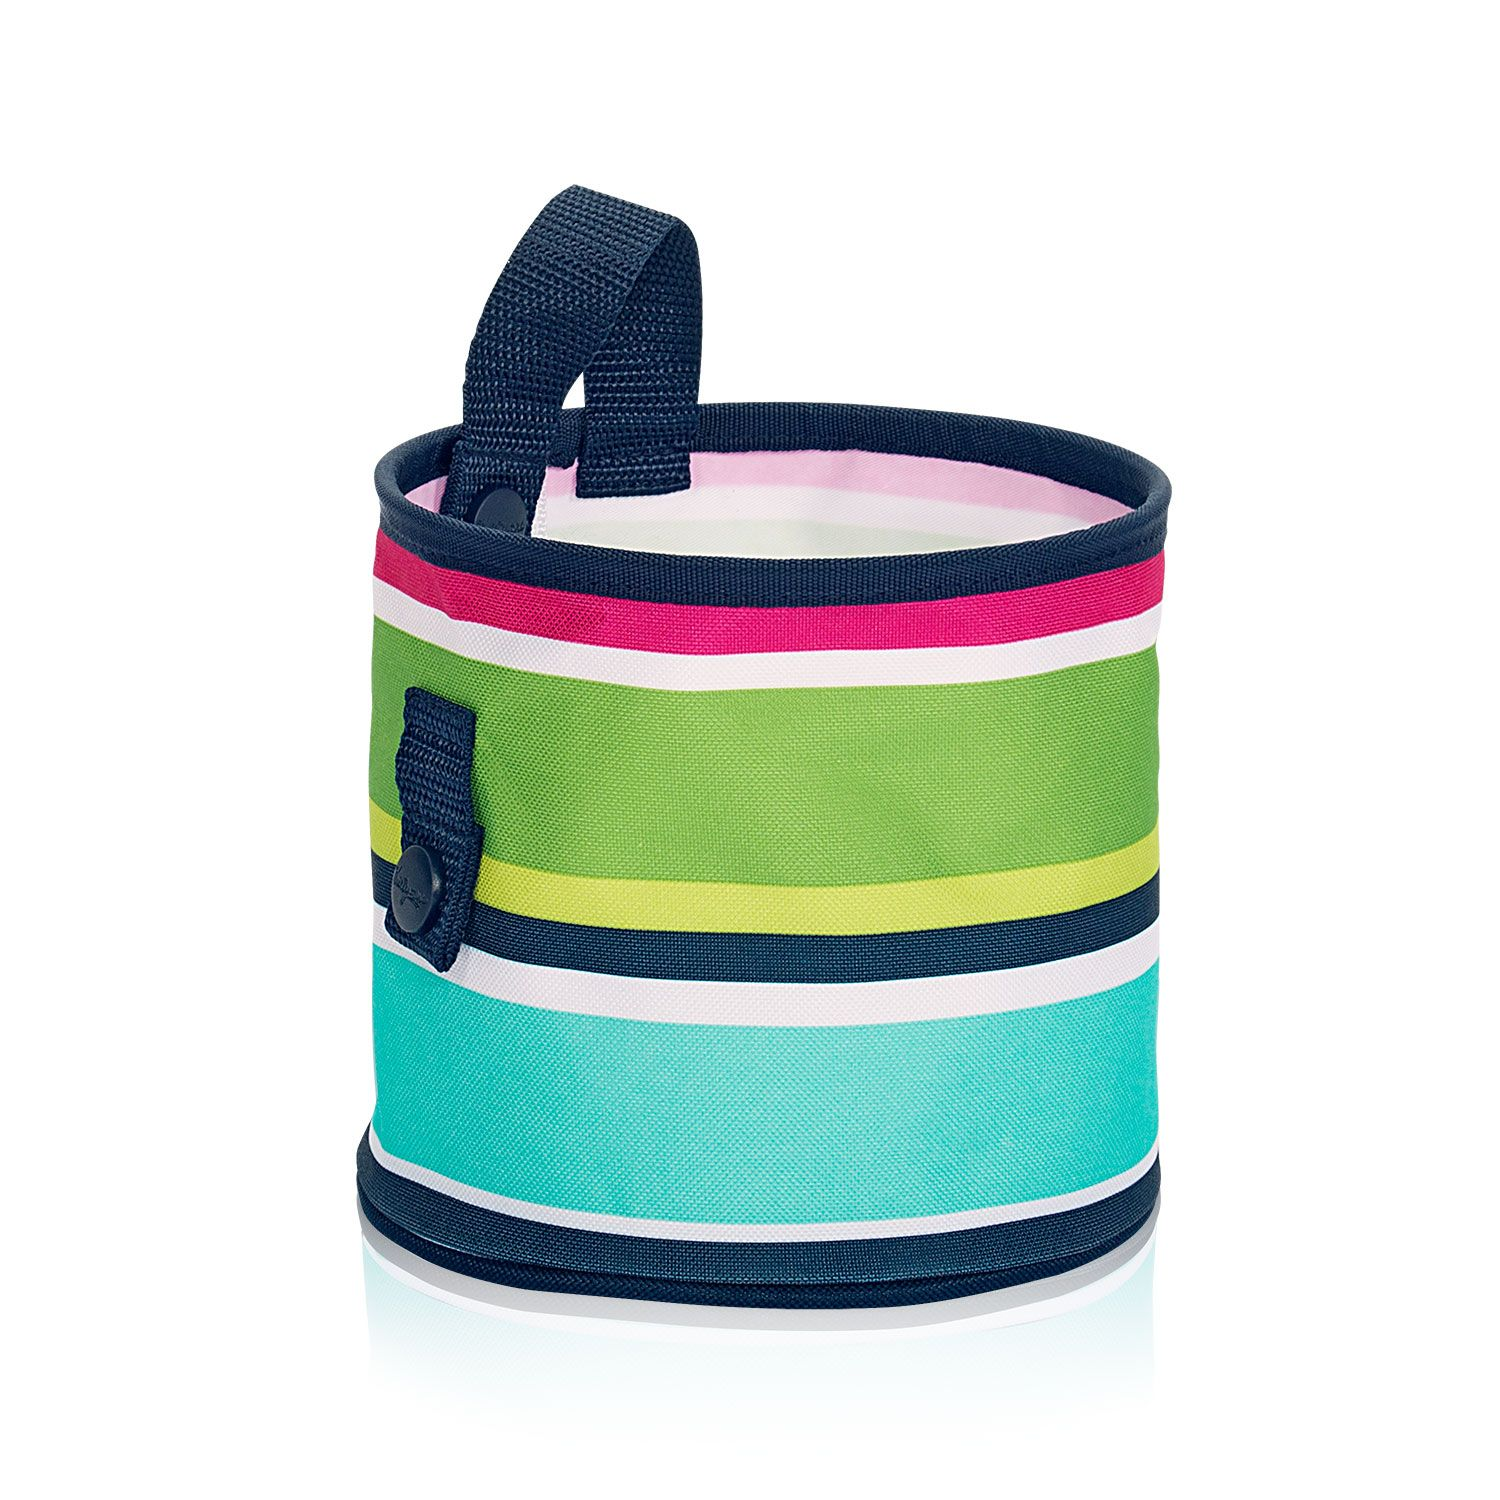 Oh snap bin ideas - Oh Snap Bin In Preppy Pop For 10 Snaps Are The Secret Of This